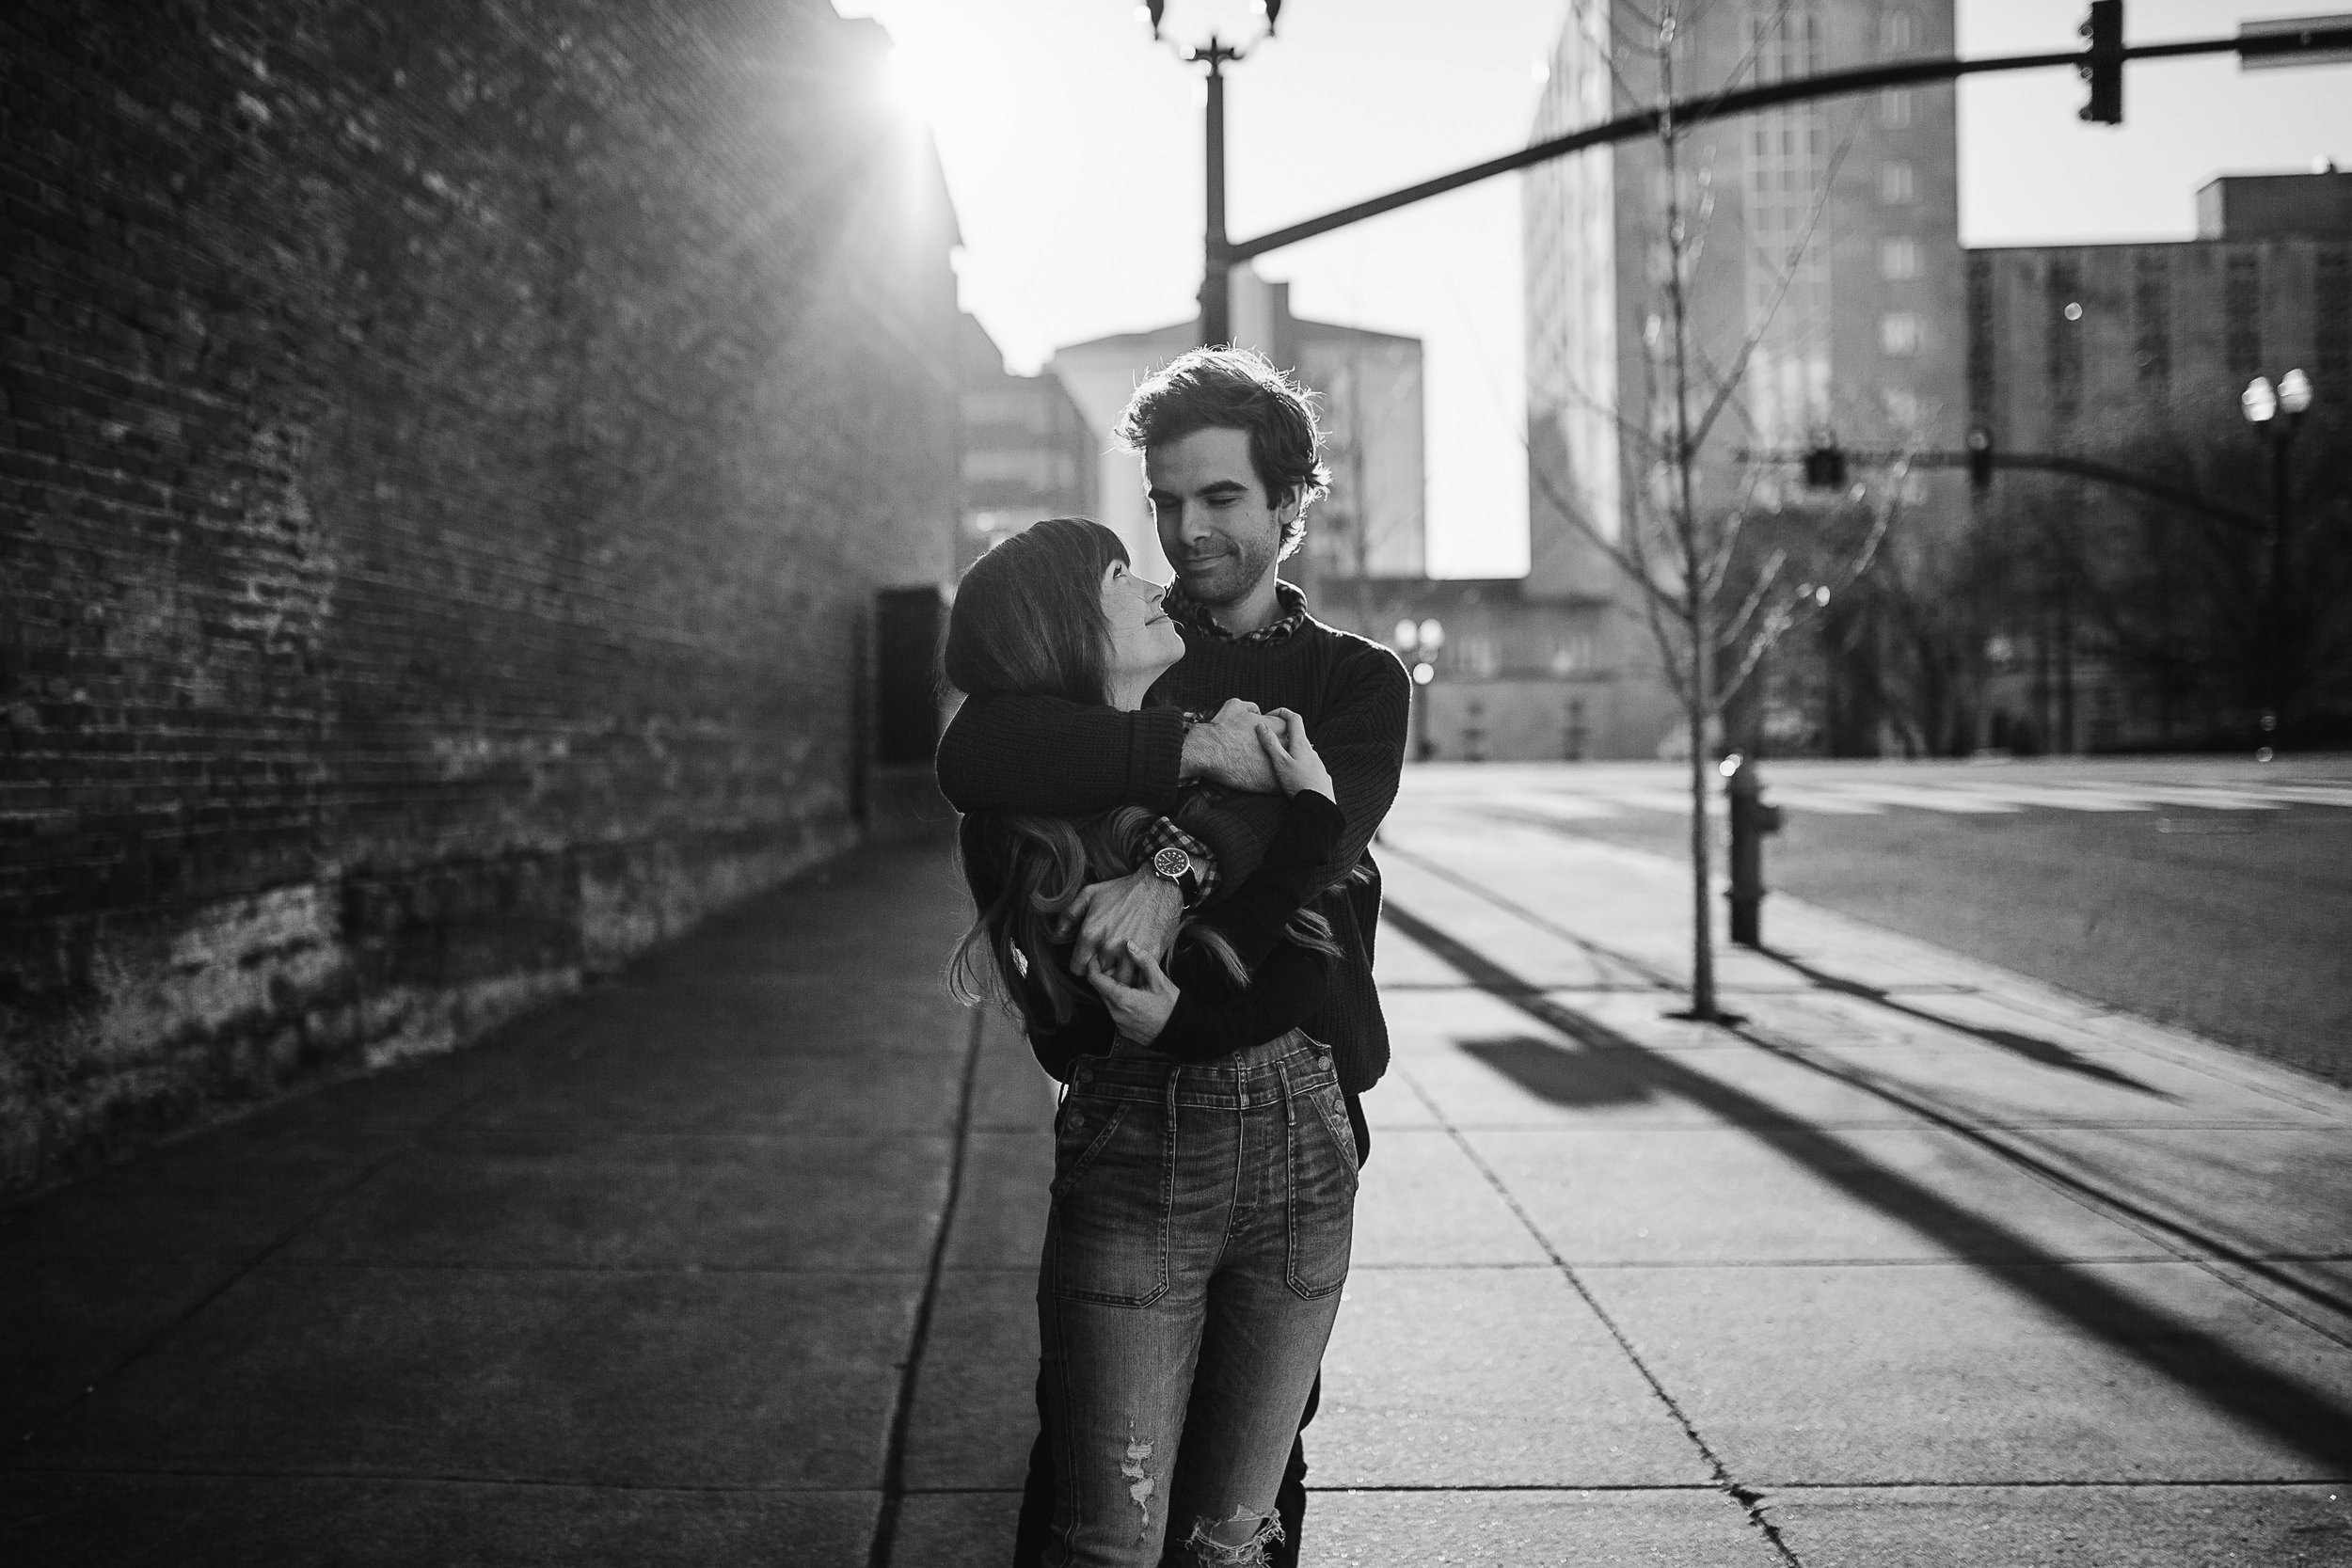 downtown-nashville-wedding-photographer-cassie-cook-photography